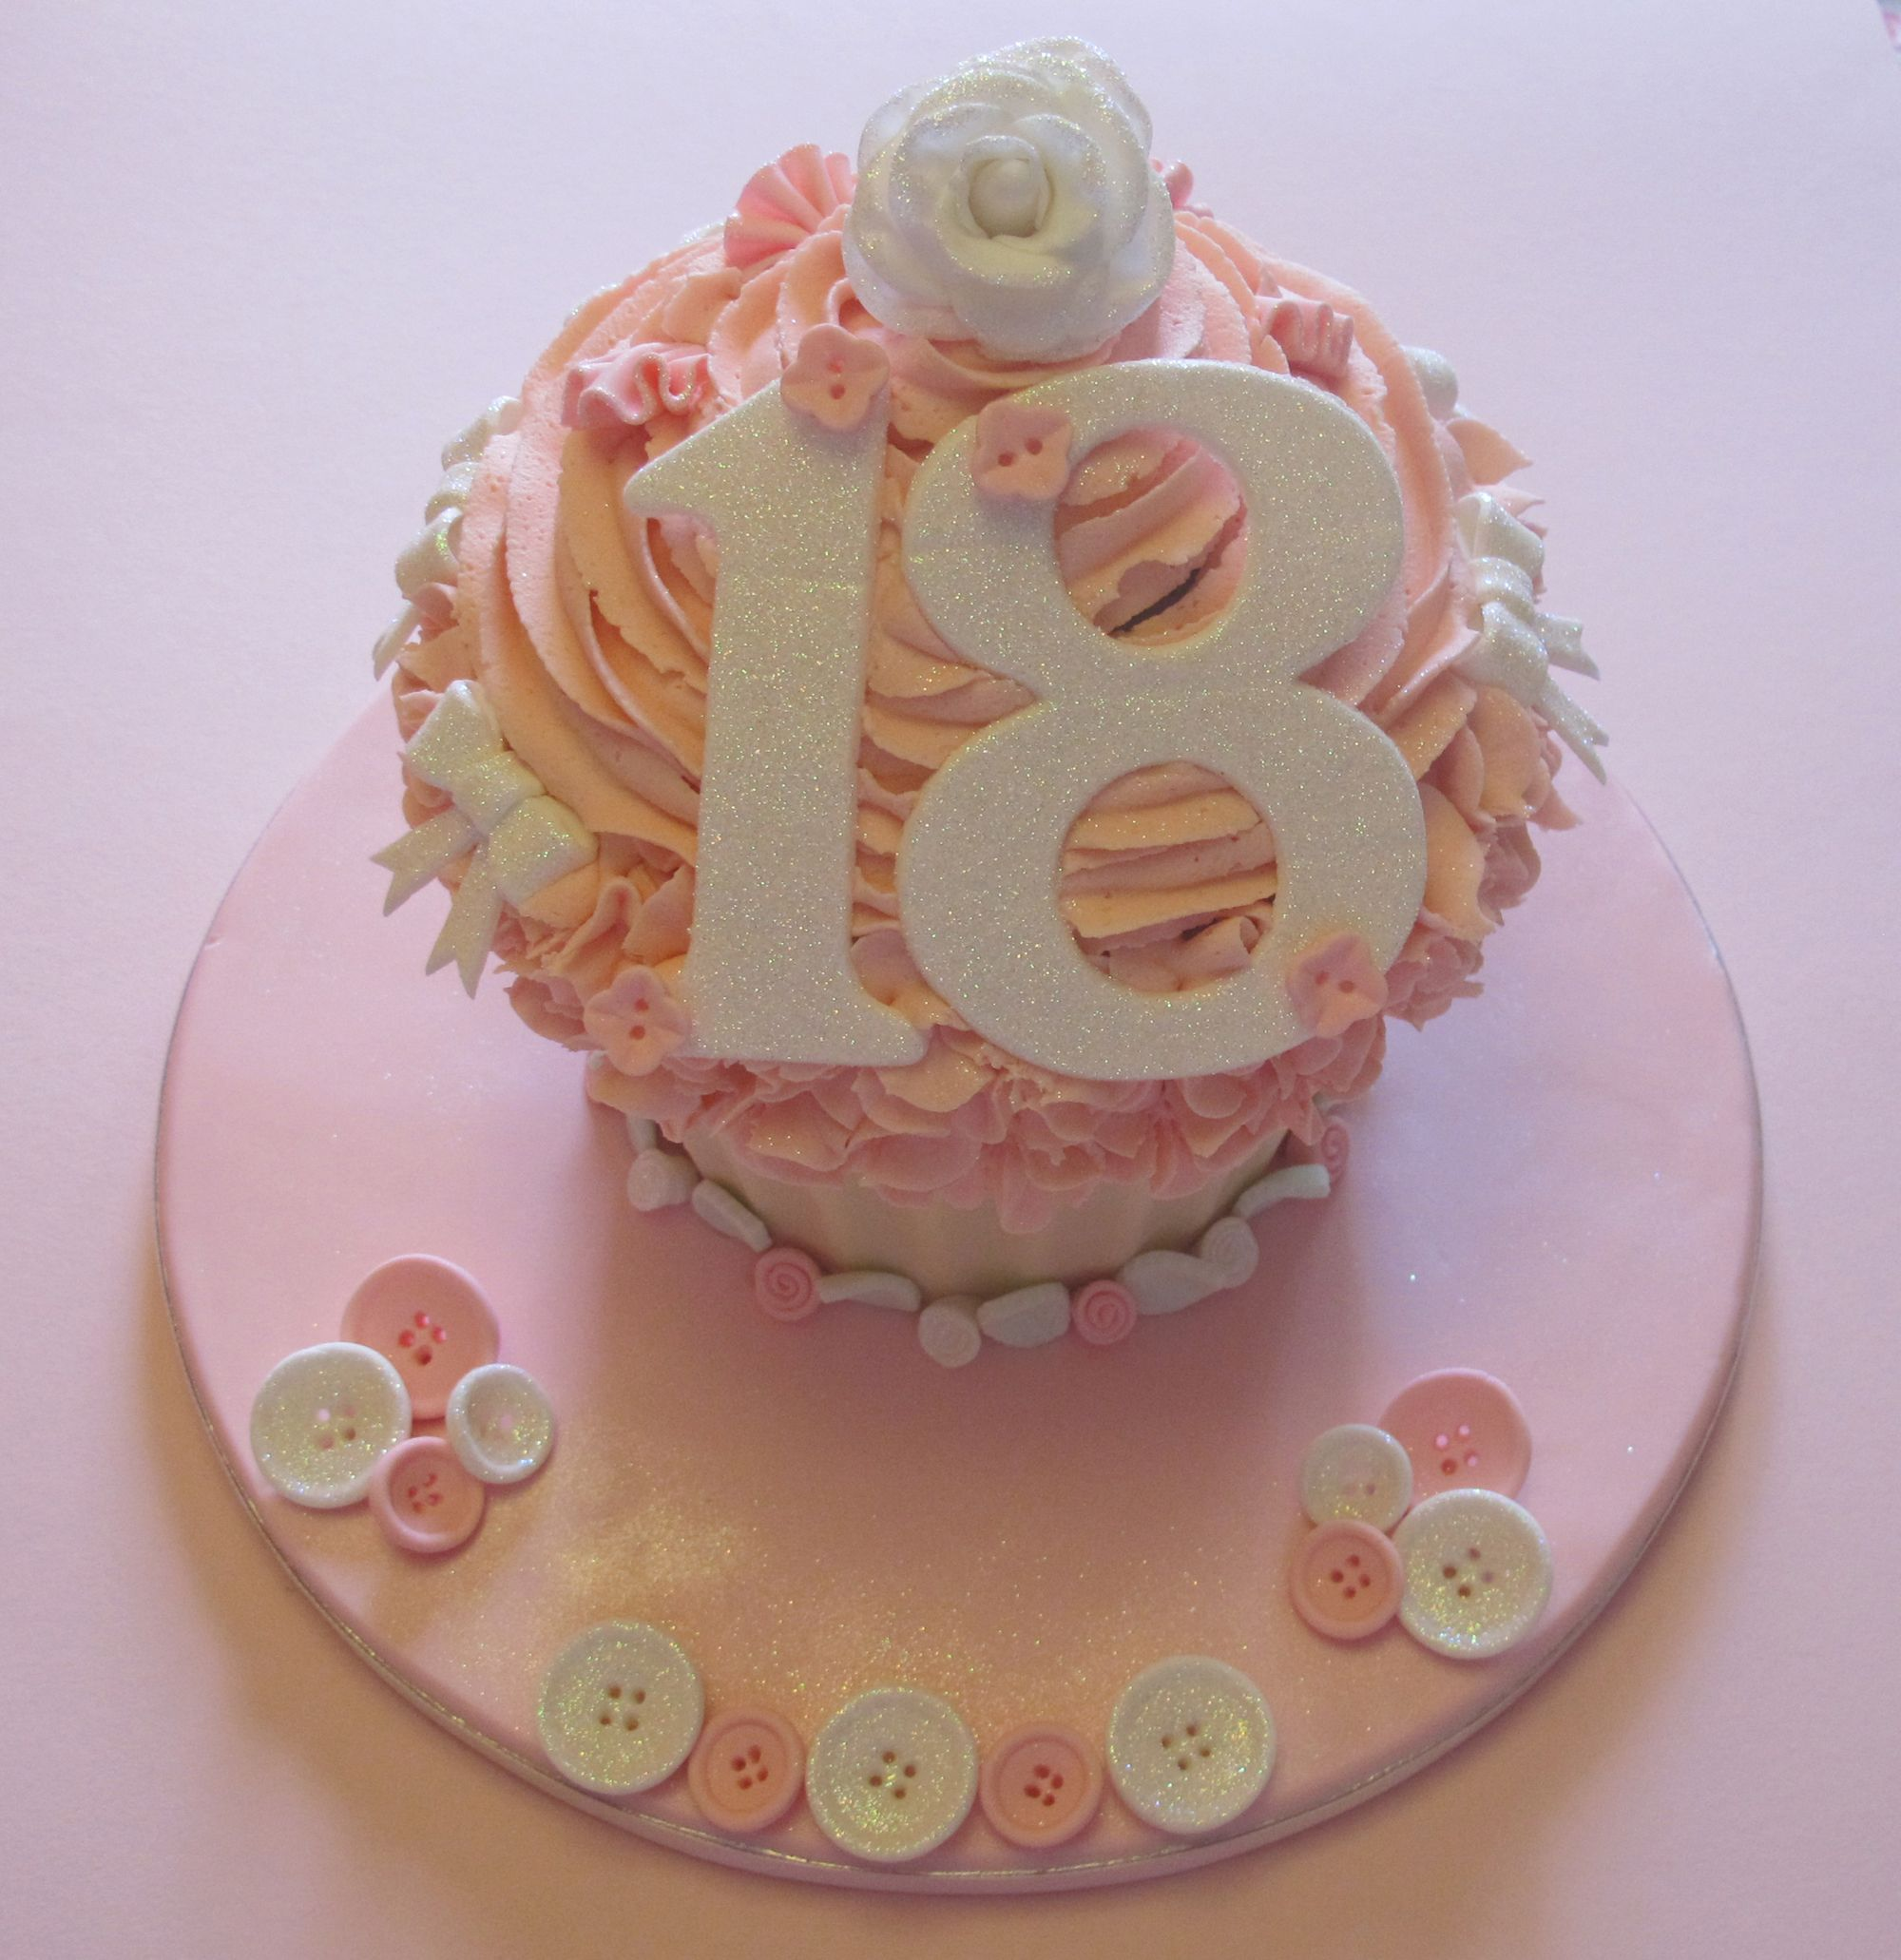 Pin By Maria Canedo On Cakes Giant Cupcake Cakes Big Cupcake